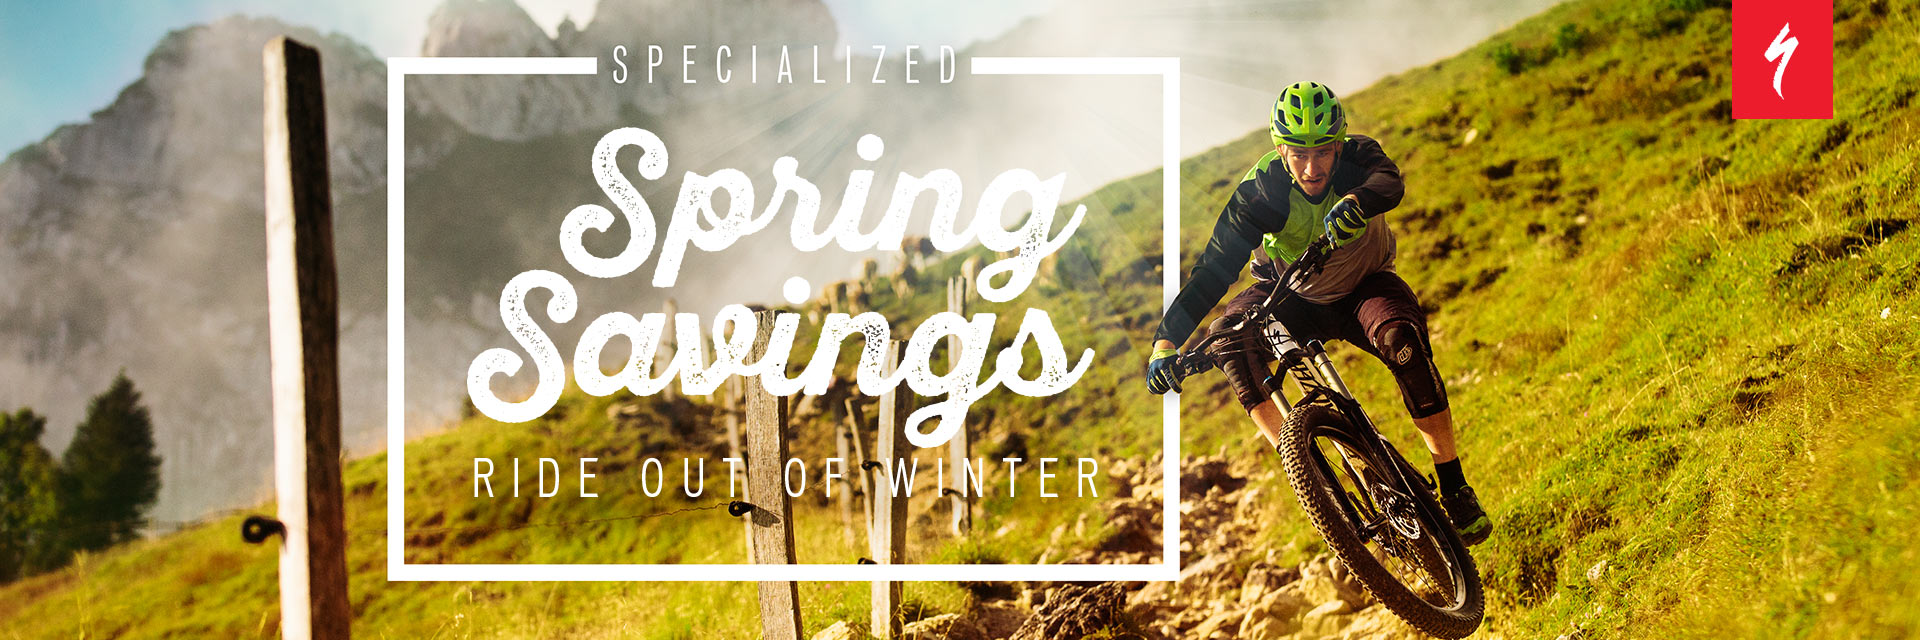 Specialized Springs Savings